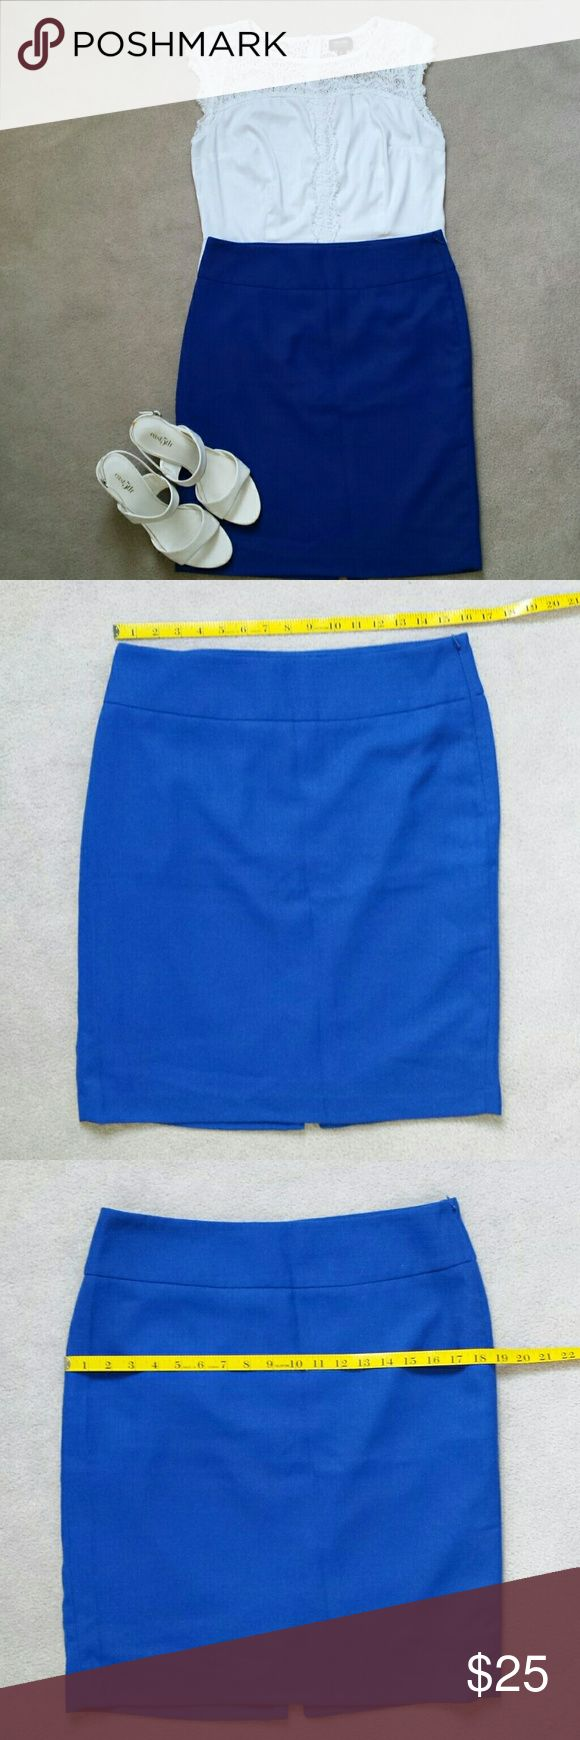 The Limited Royal Blue Pencil Skirt The Limited Royal Blue Pencil Skirt. Side zipper with hook and eye close. Fully lined. Back vent.  Outshell : 76% polyester & 24% viscose rayon  Lining: 100% polyester   Great condition. No rips, stains, or imperfections. Smoke free house.   Reasonable offers are accepted and I discount bundles. The Limited Skirts Pencil